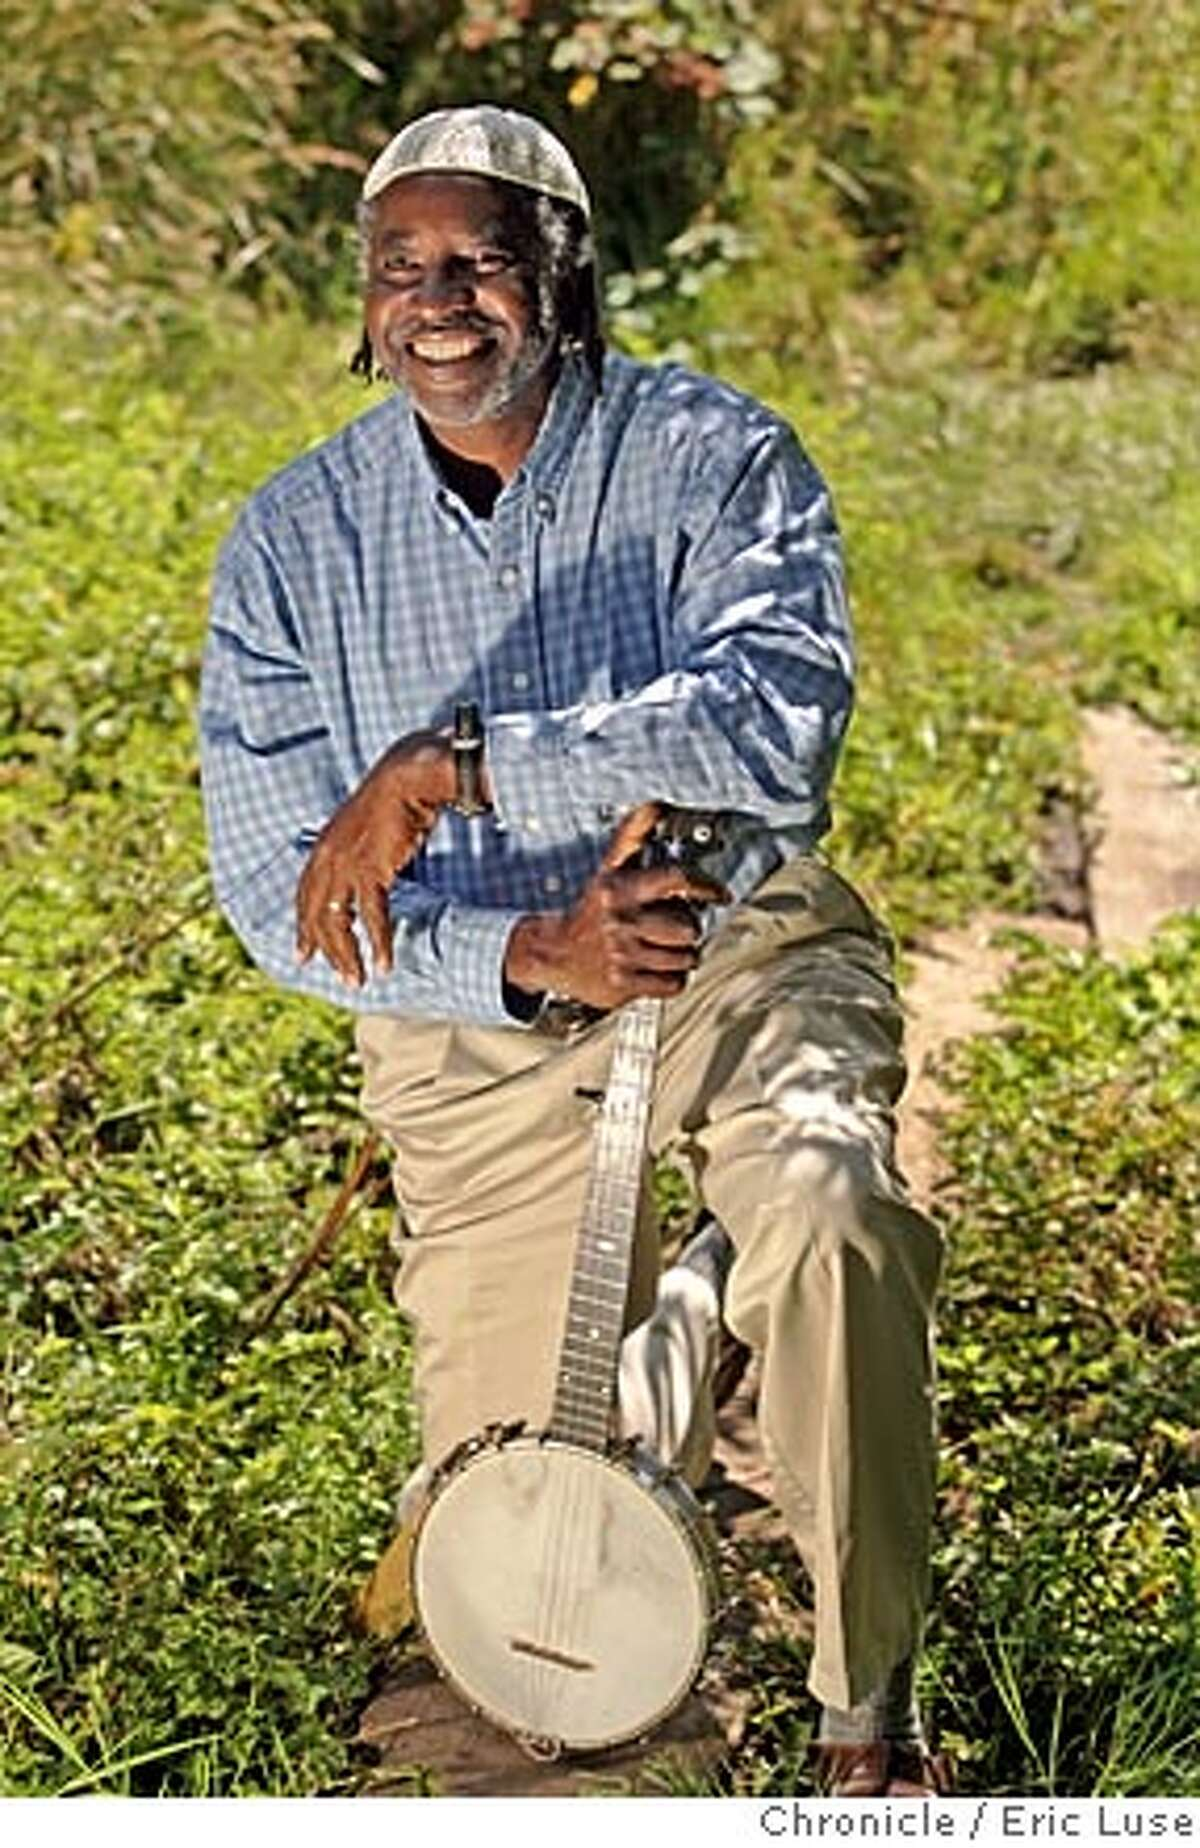 nbplanetwalker_042_el.JPG Once John Francis took the vow of silence he had always wanted to learn the banjo and the timing was perfect to learn it while walking the planet. John Francis is an environmentalist and a man of principles. He gave up cars for 22 years; he took a vow of silence that lasted 17 years. His book